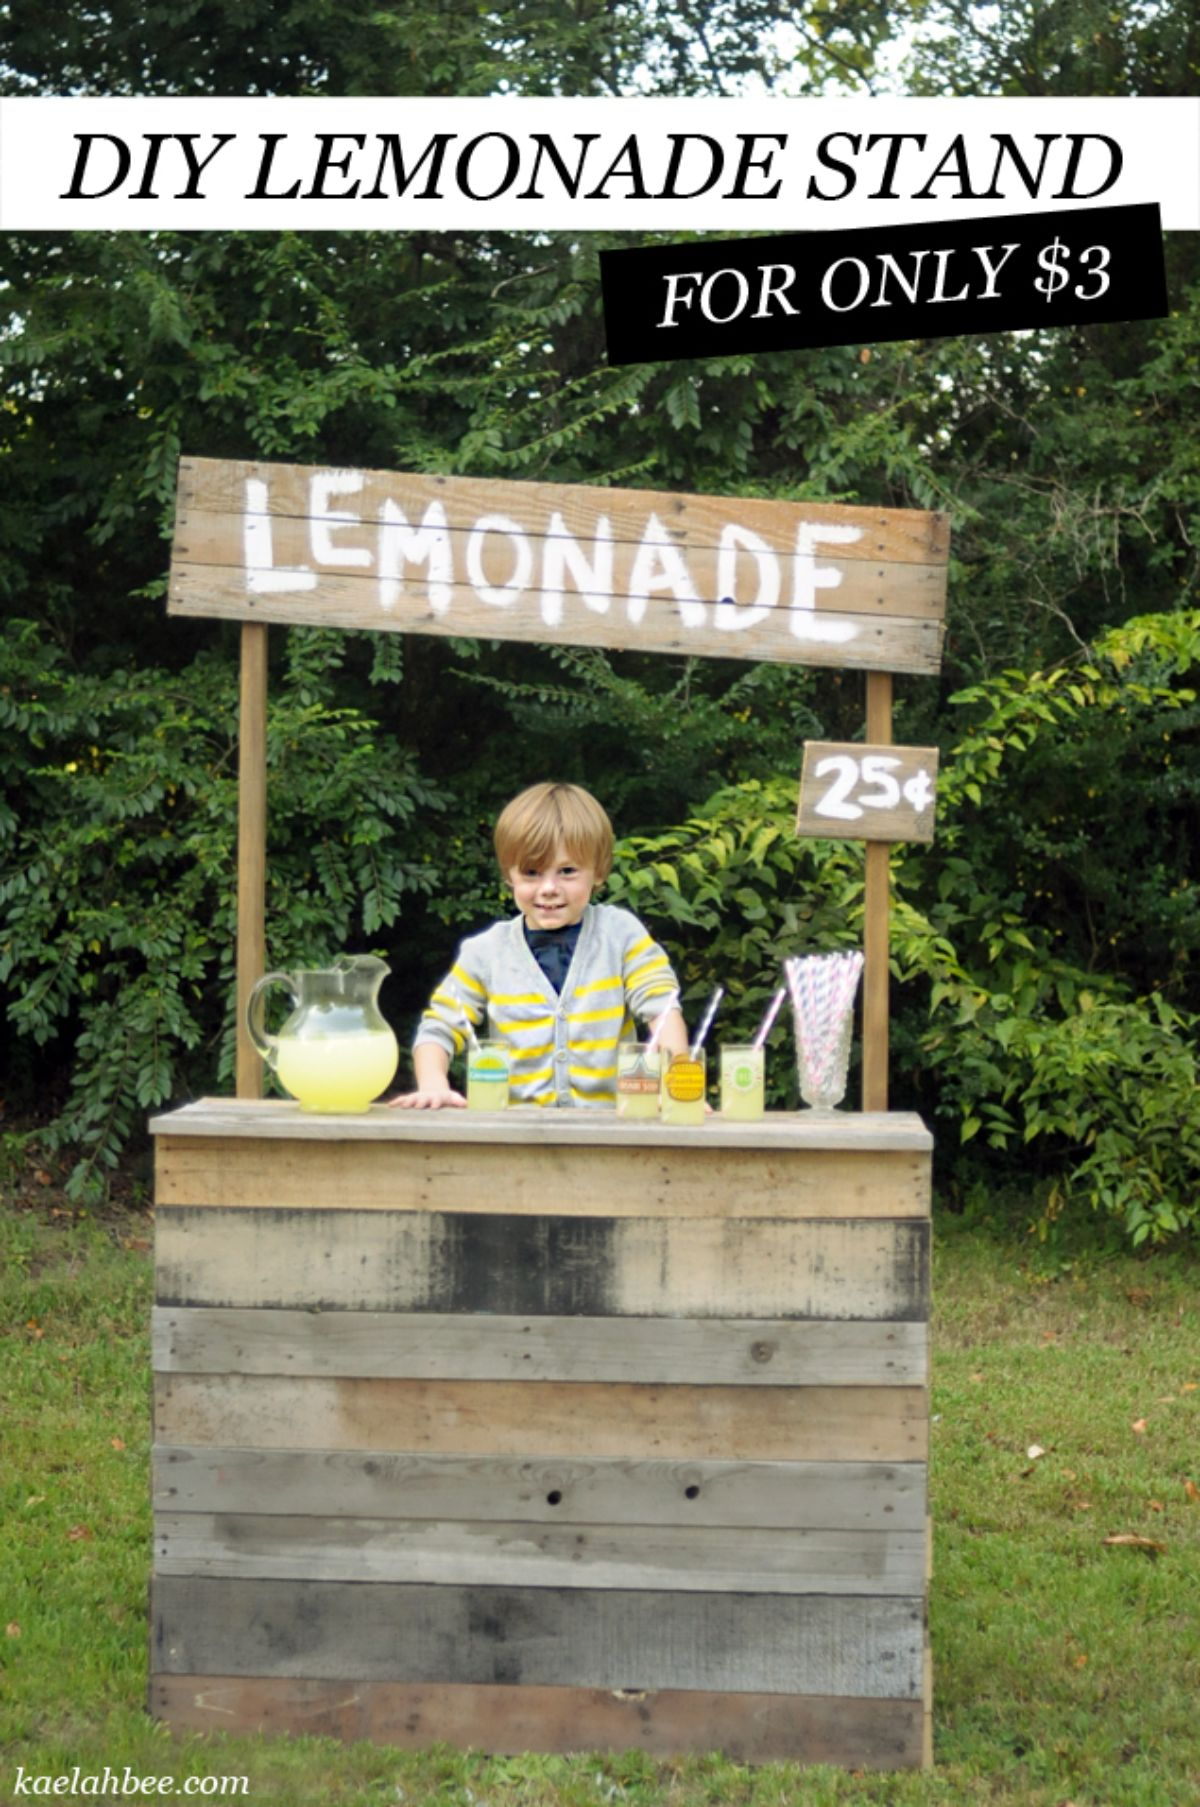 """a boy in a striped sweater stands behind a emondae stand made of pallets. The text reads """"DIY Lemonade stand for only $3"""""""